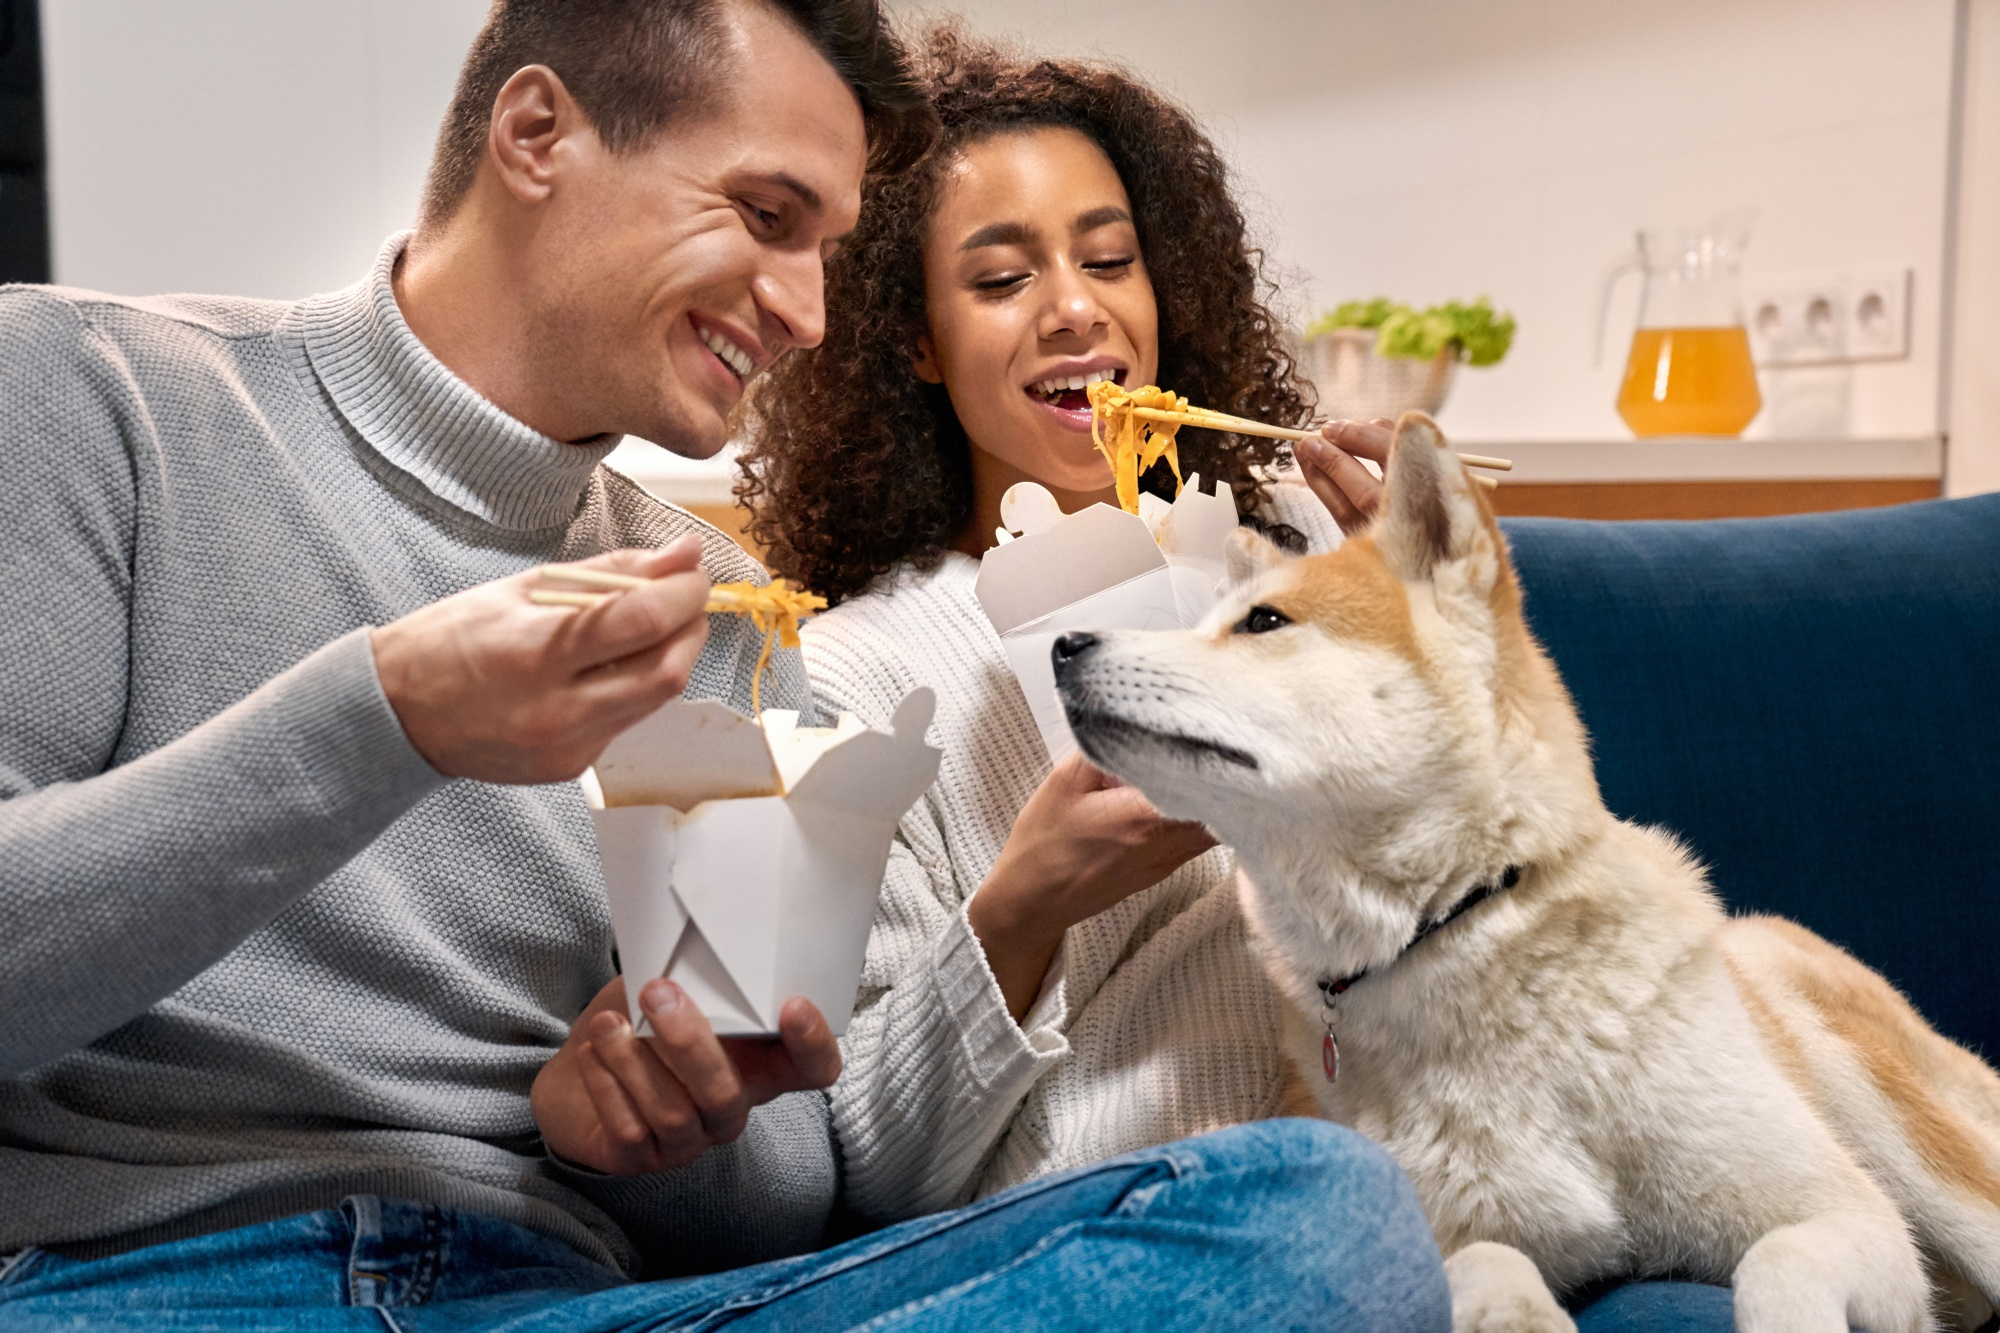 dogs save empty nesters, attractive ethnic couple over 40 sitting on the sofa eating Chinese take-out with their dog